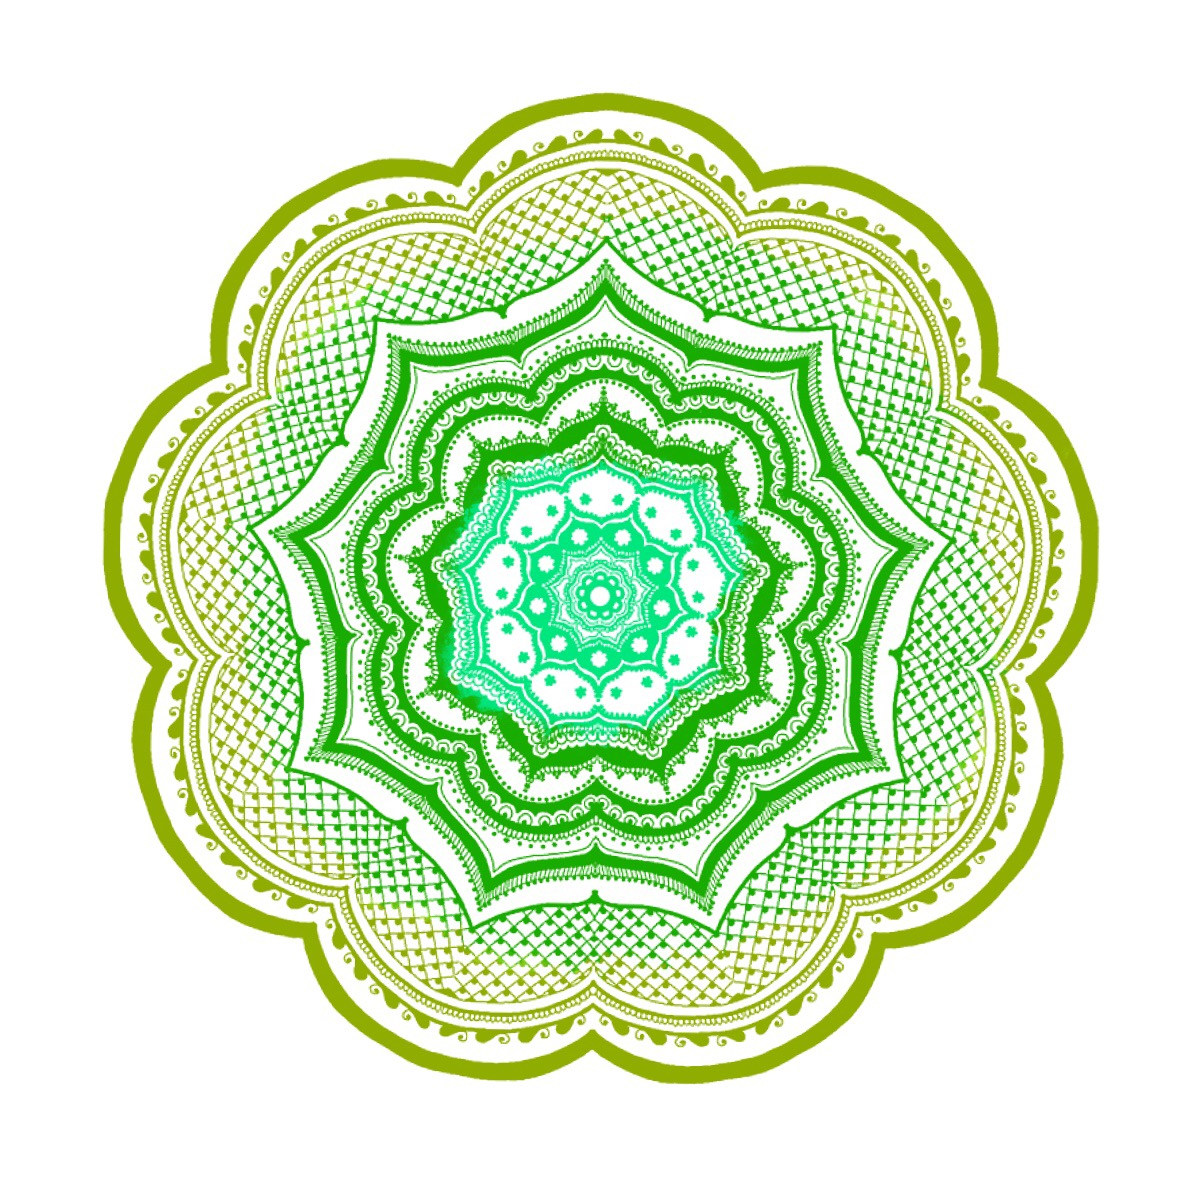 Mandala made on Ipad